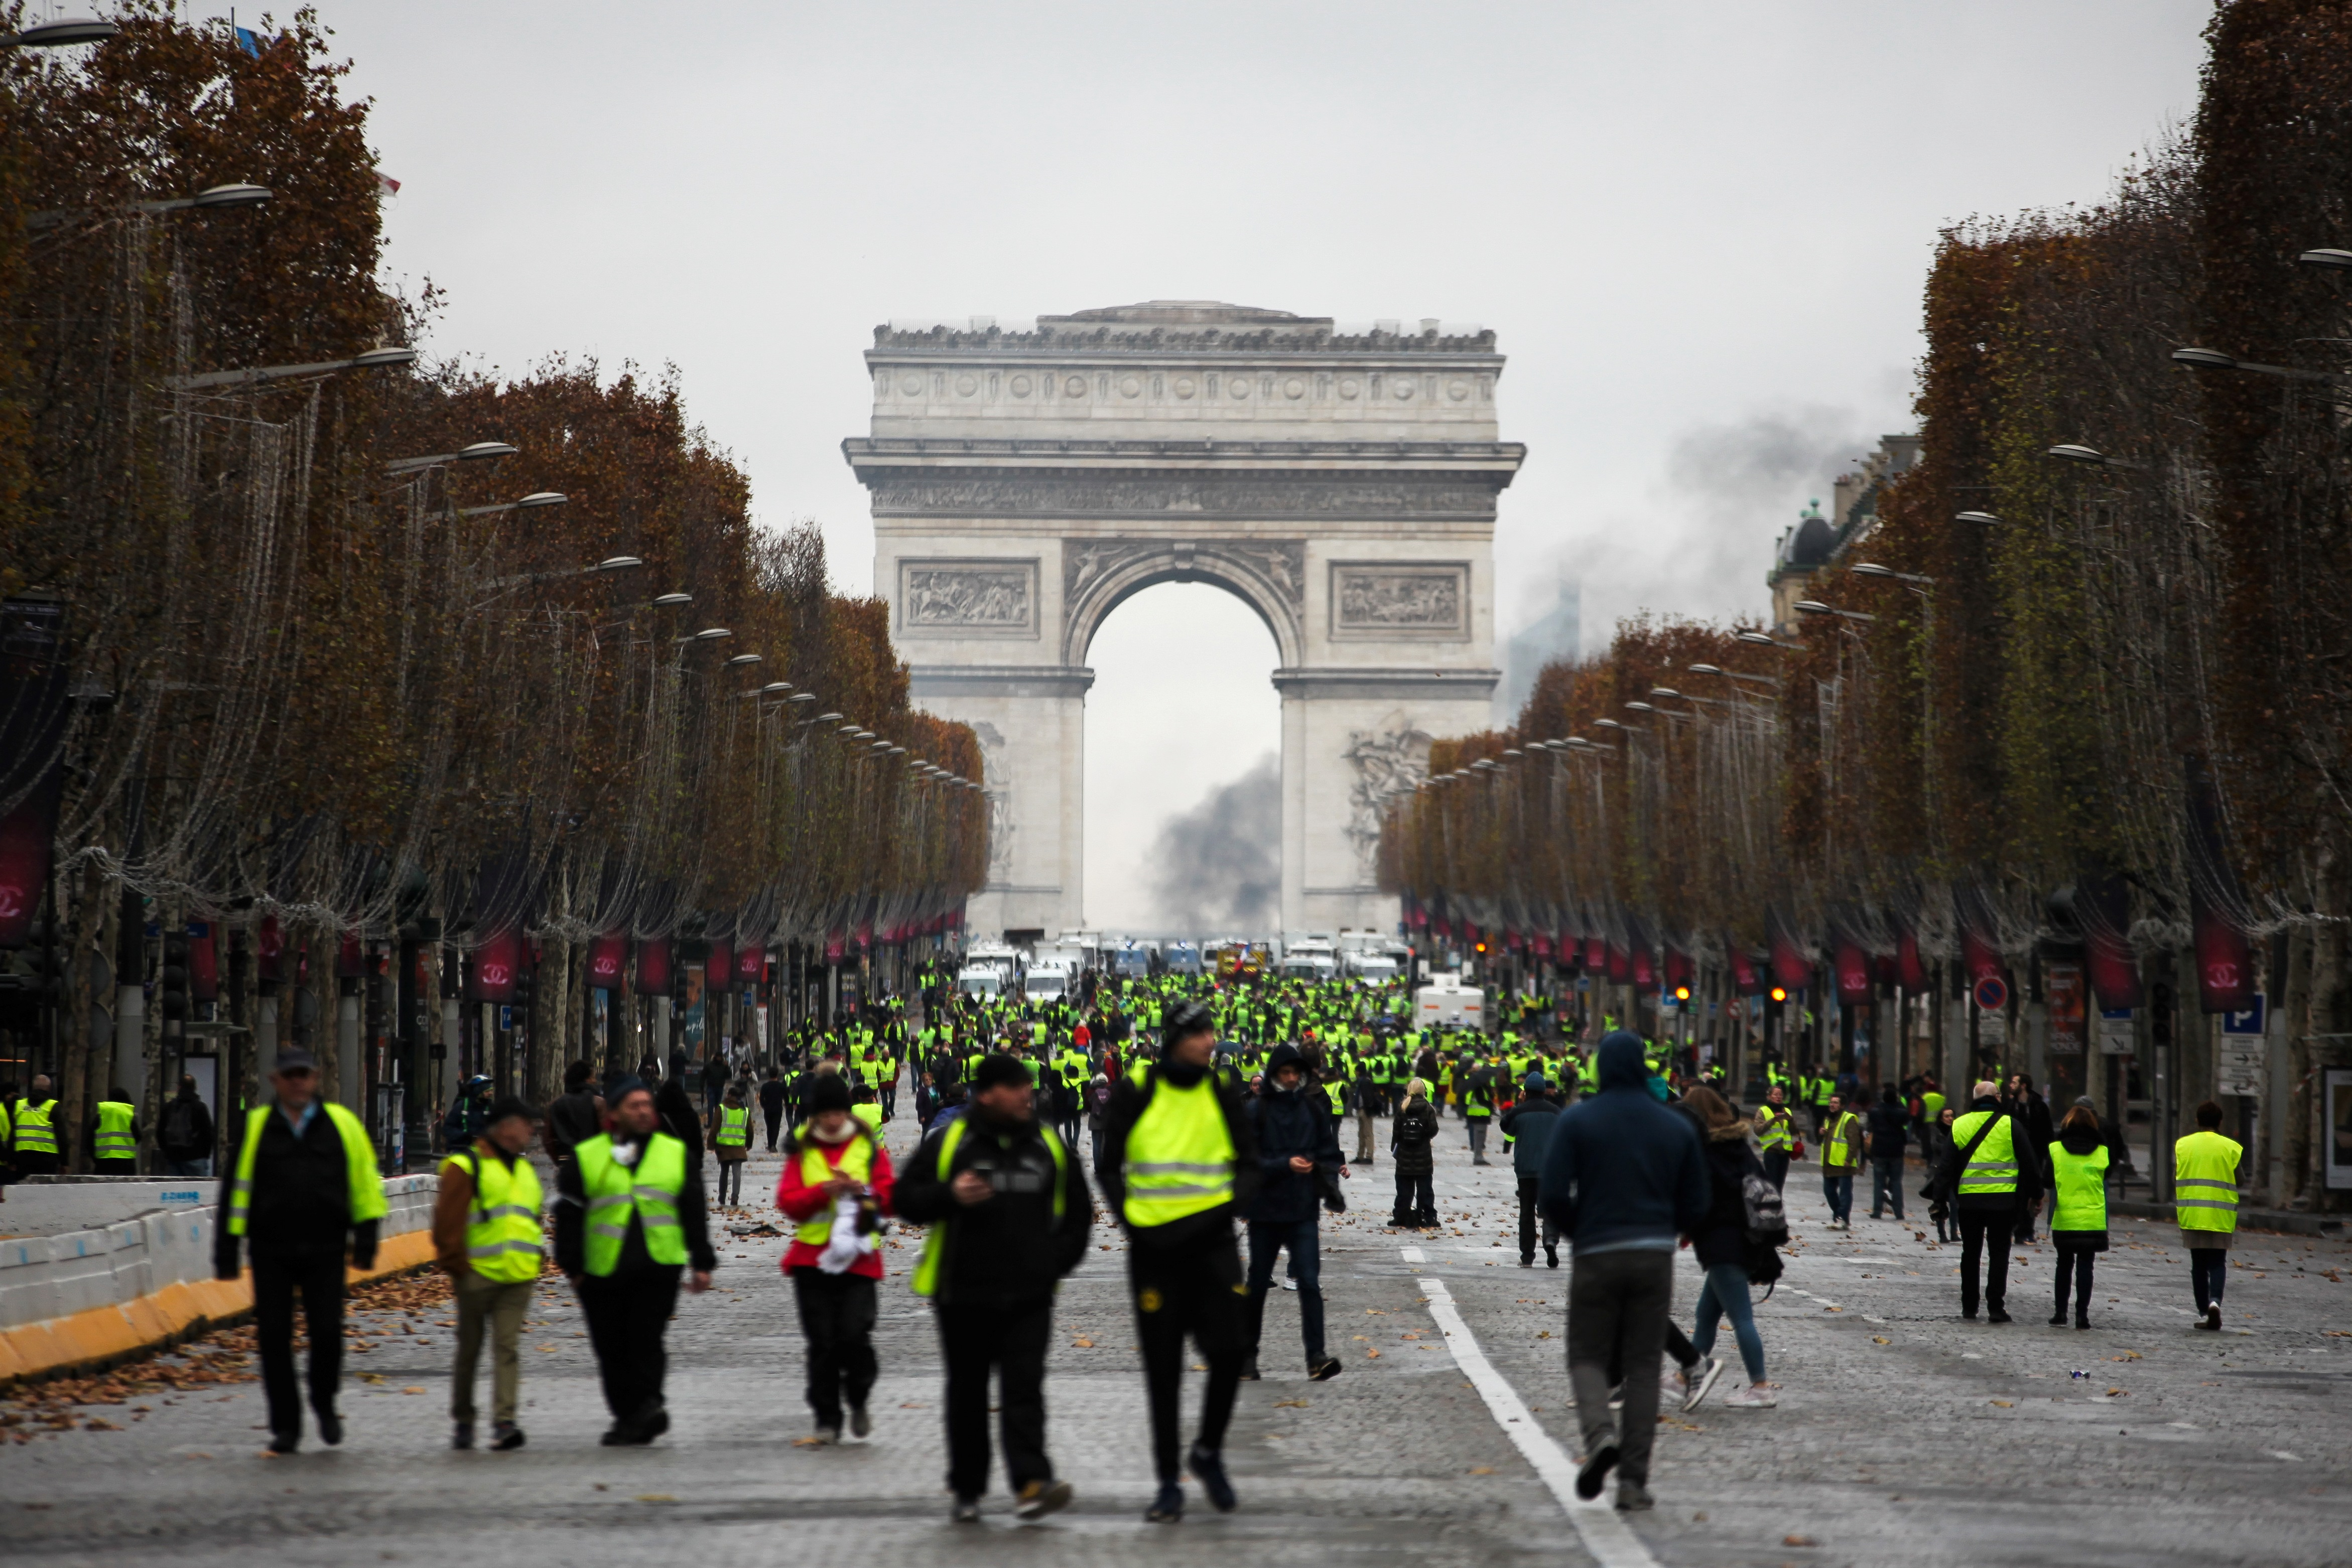 Buy Here Pay Here Cars >> An impending yellow vest moment for the US? | Salon.com